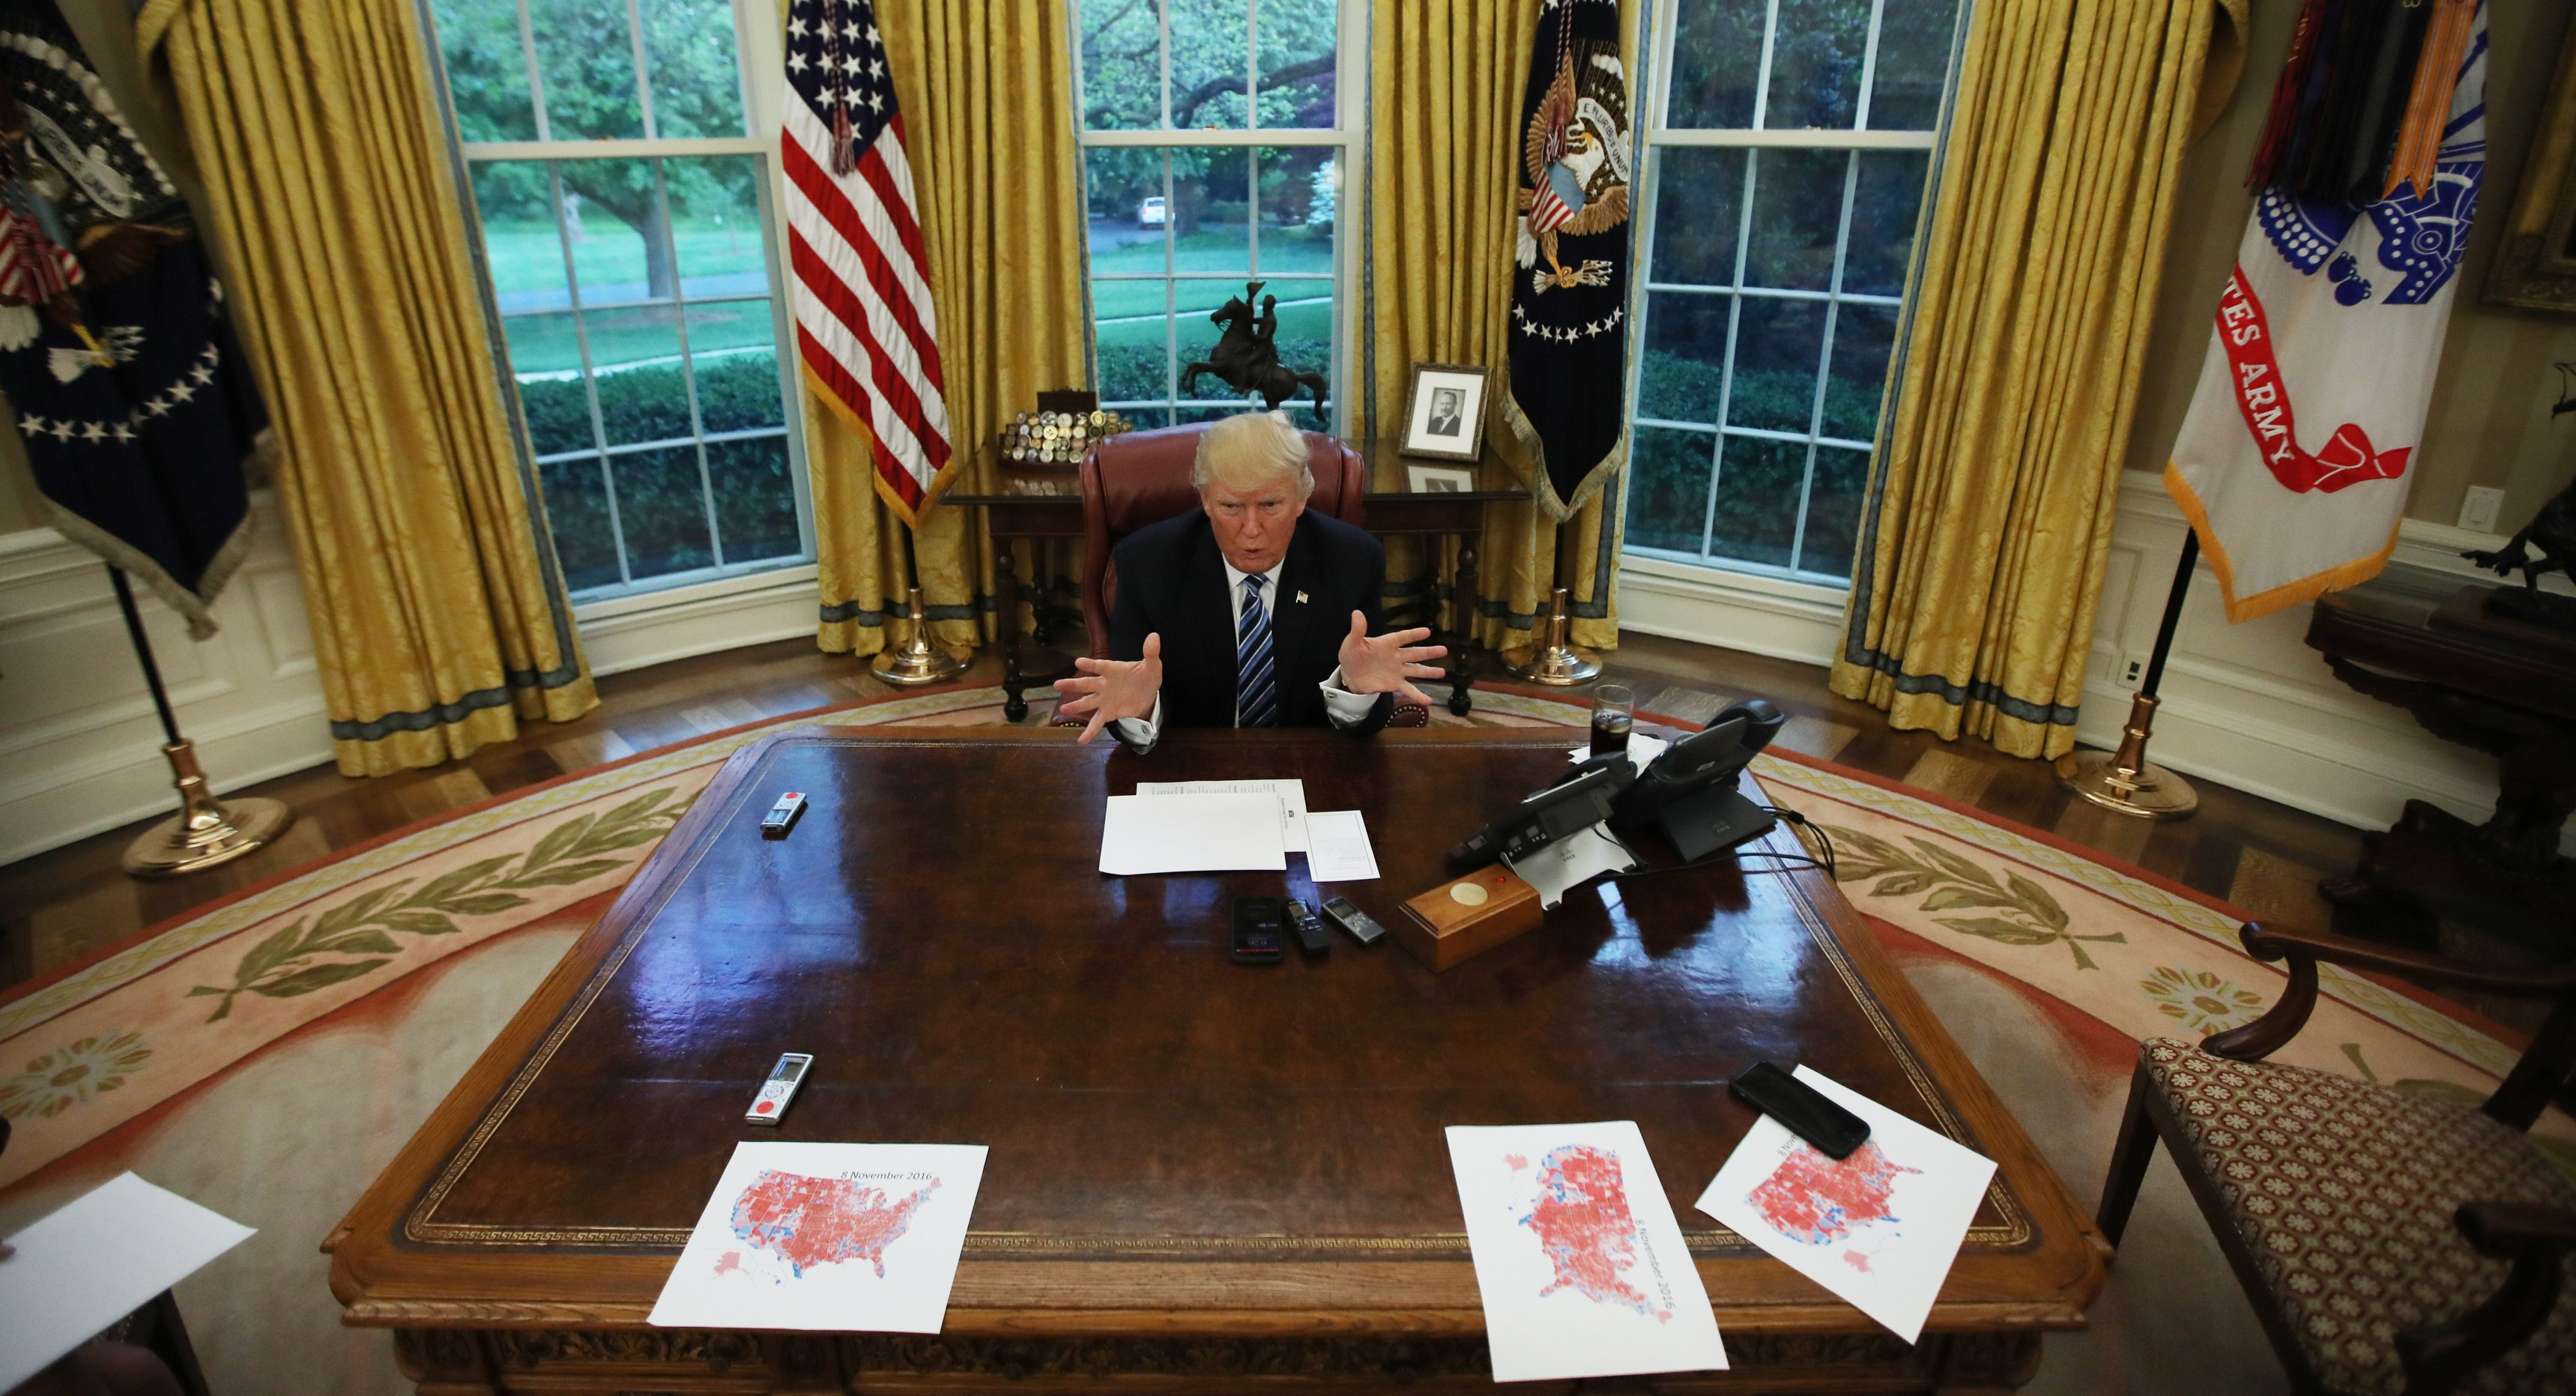 Trump at 100 Days An Oval Office photo perfectly illustrates